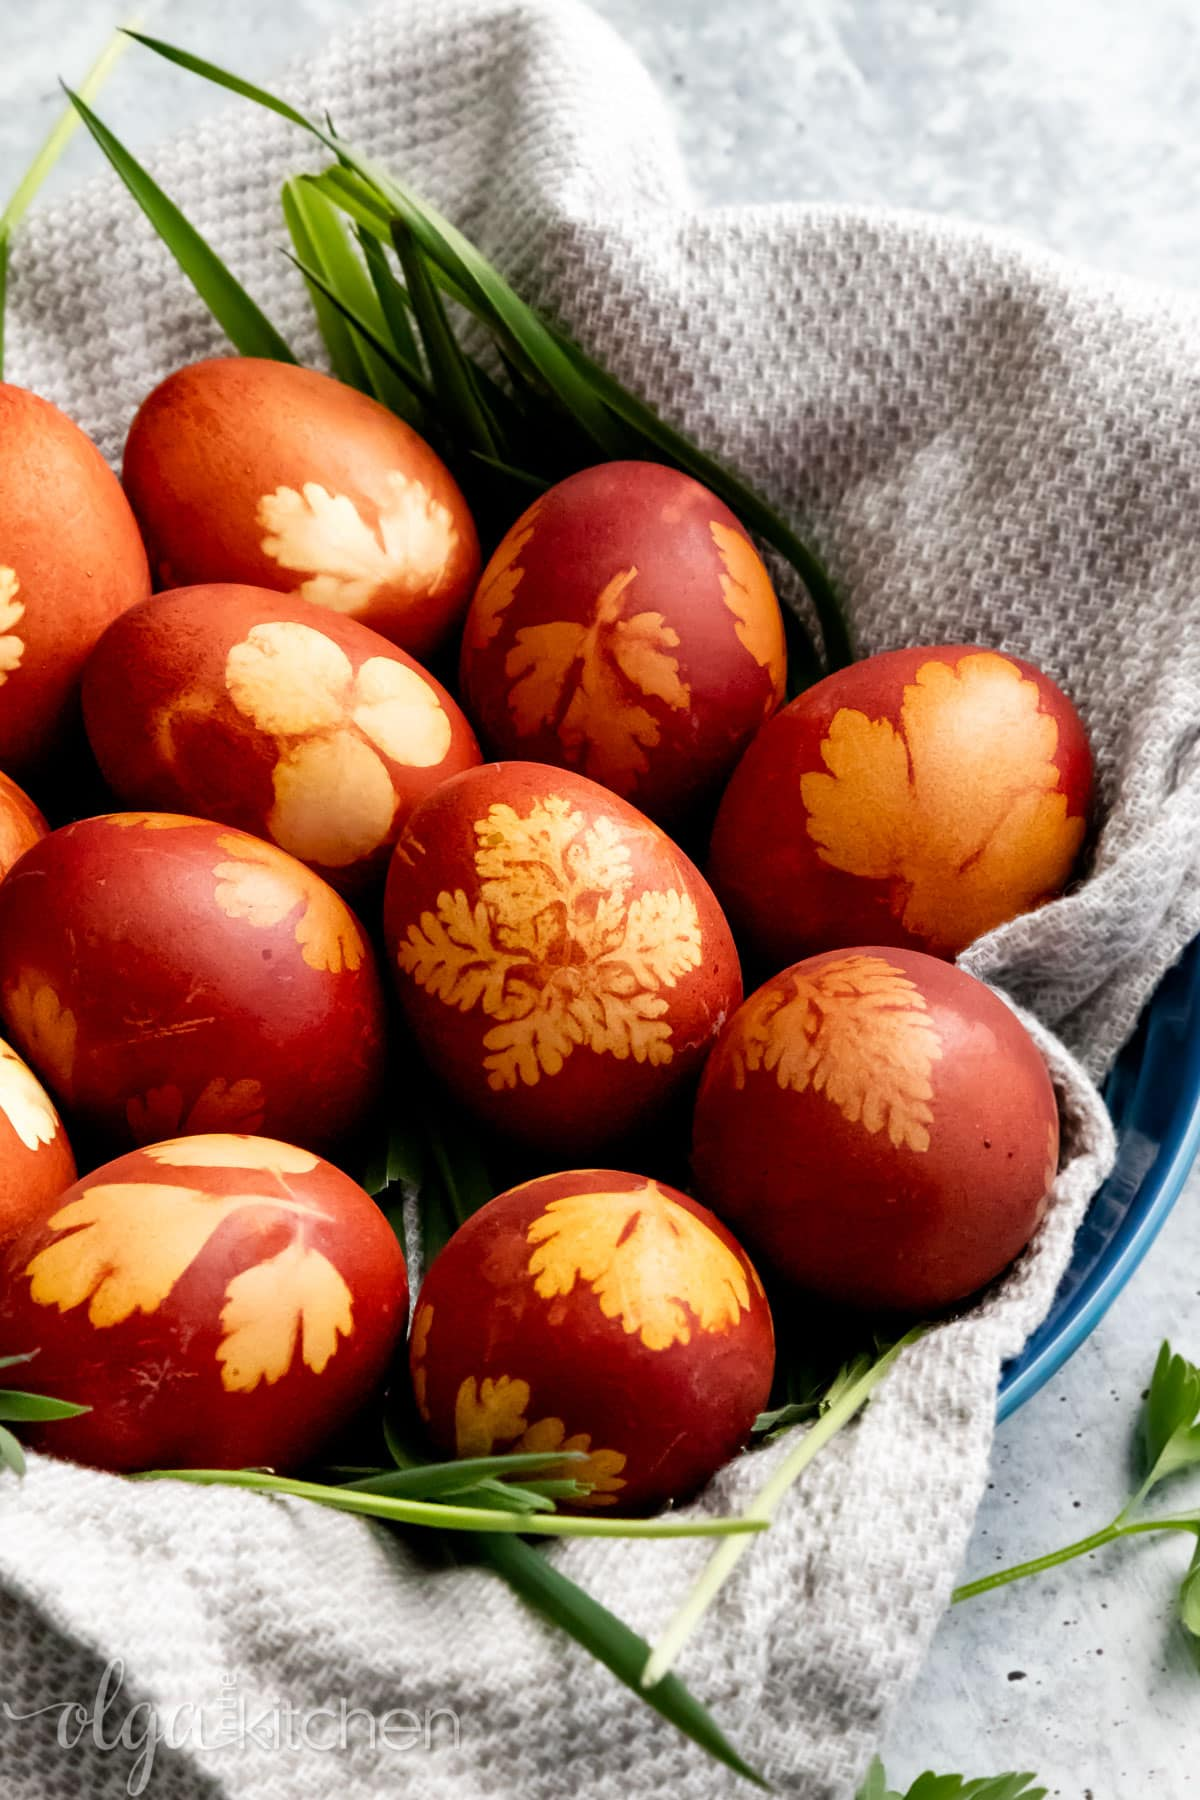 How to naturally dye Easter eggs using onion skins.